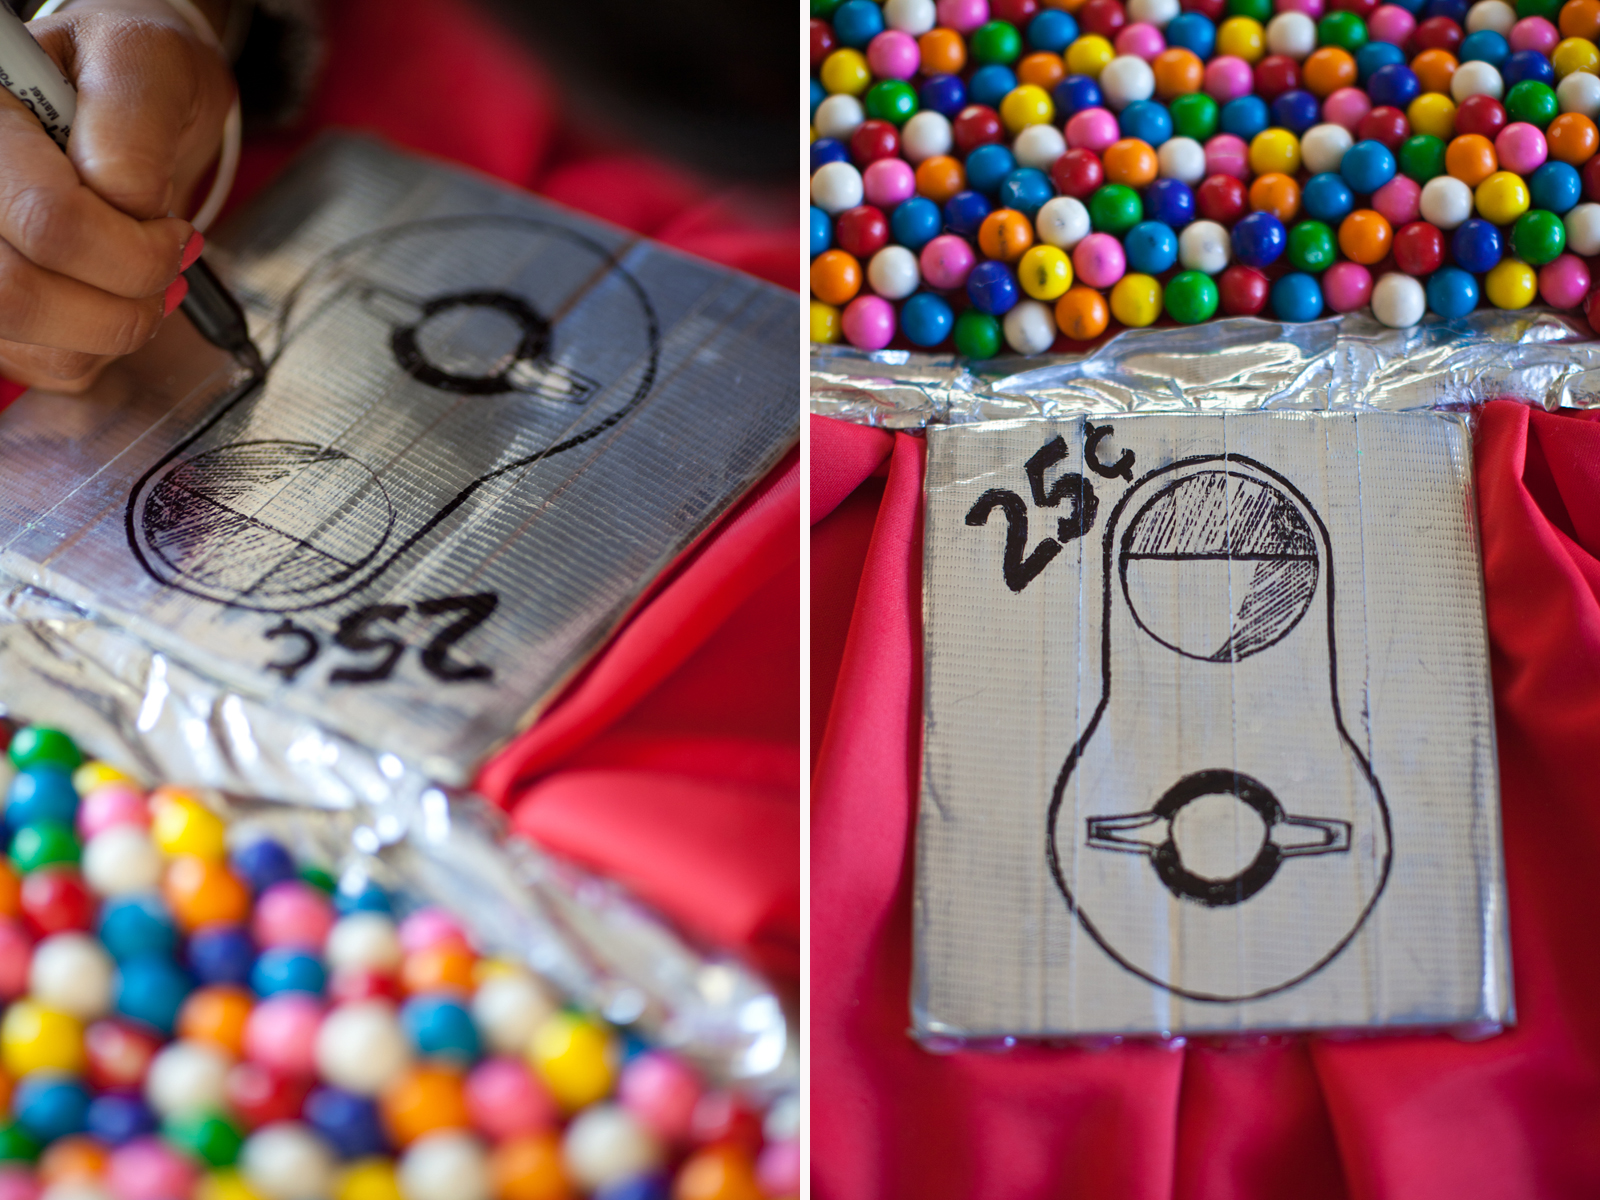 Sketch out a coin slot using your sharpi  e. Glue all four corners to dress under waistline. Let gumballs and coin slot sit overnight.